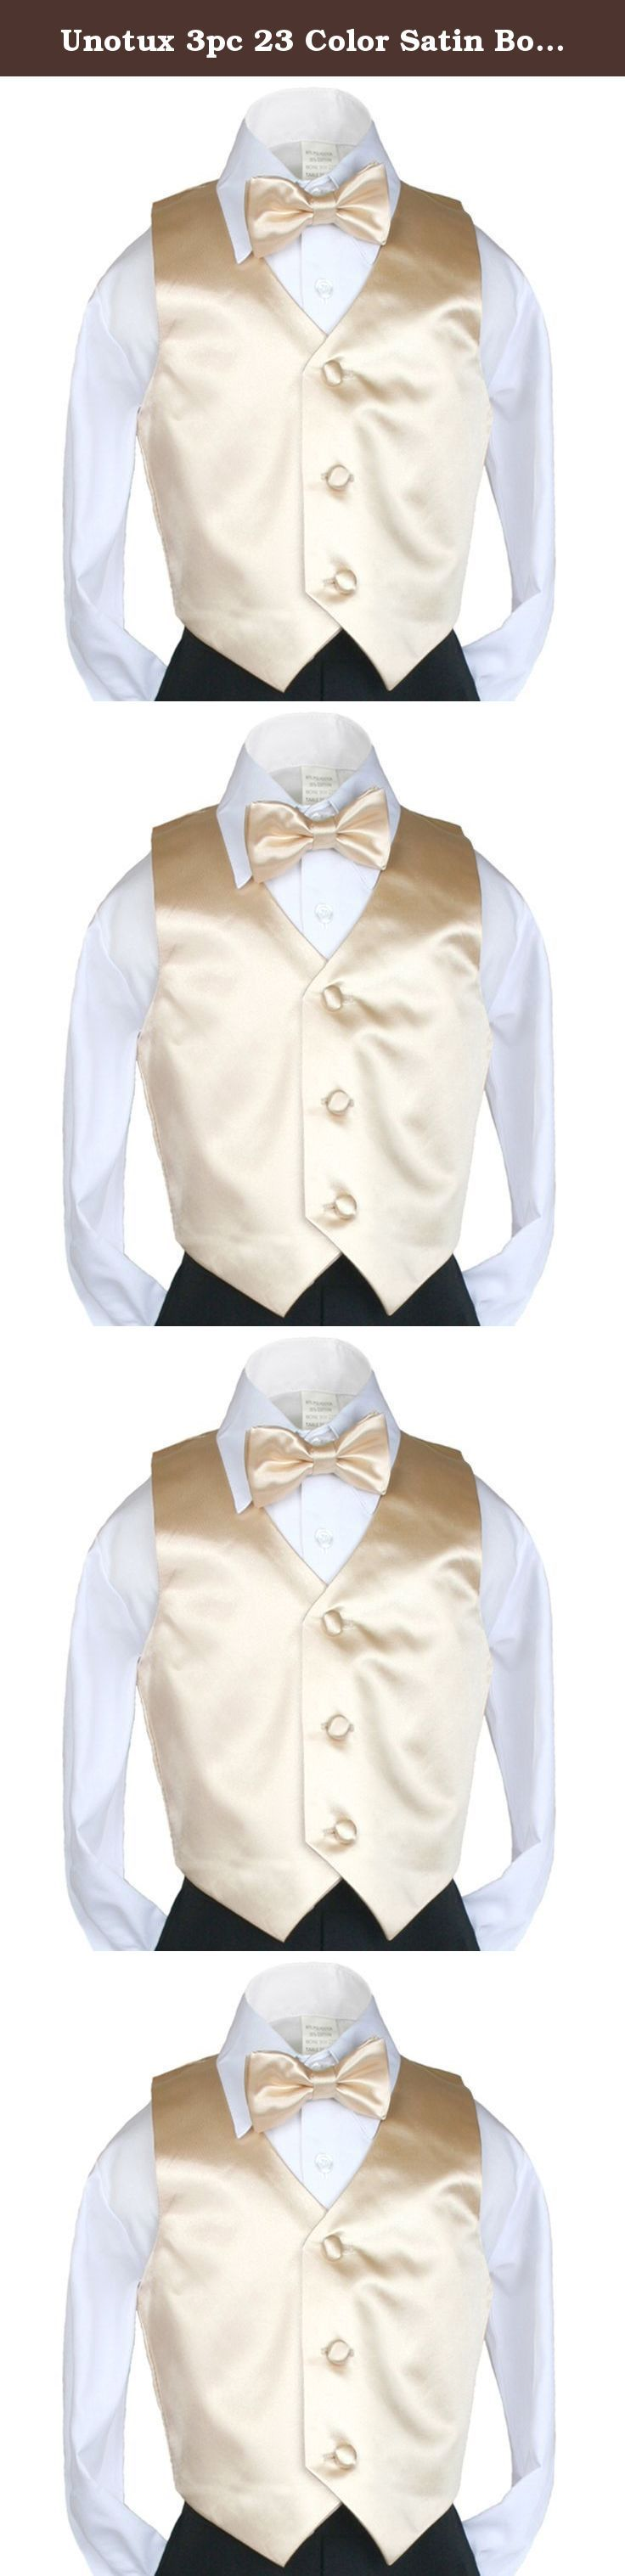 Unotux 3pc 23 Color Satin Boys Vest Bow Tie Necktie Sets Formal Tuxedo Suits S-7 (4T, Light Champagne). 1. 100% Satin Vest 2. Matching Boy Baby Suit S-XL (Baby Sizes), Toddler suit 2T-4T (Toddler Sizes), Kid suit 5-14 (Kid Sizes), Teen suit 16-20 (Teen Sizes) 3. Satin Covered Buttons for Closure 4. Satin Fabric is used on the back of vest as well. Our store carries 23 color in this style: Black, Brown, Burgundy, Coral, Dark Gray, Eggplant, Fuchsia, Gold, Green Teal, Ivory, Light Champagne...